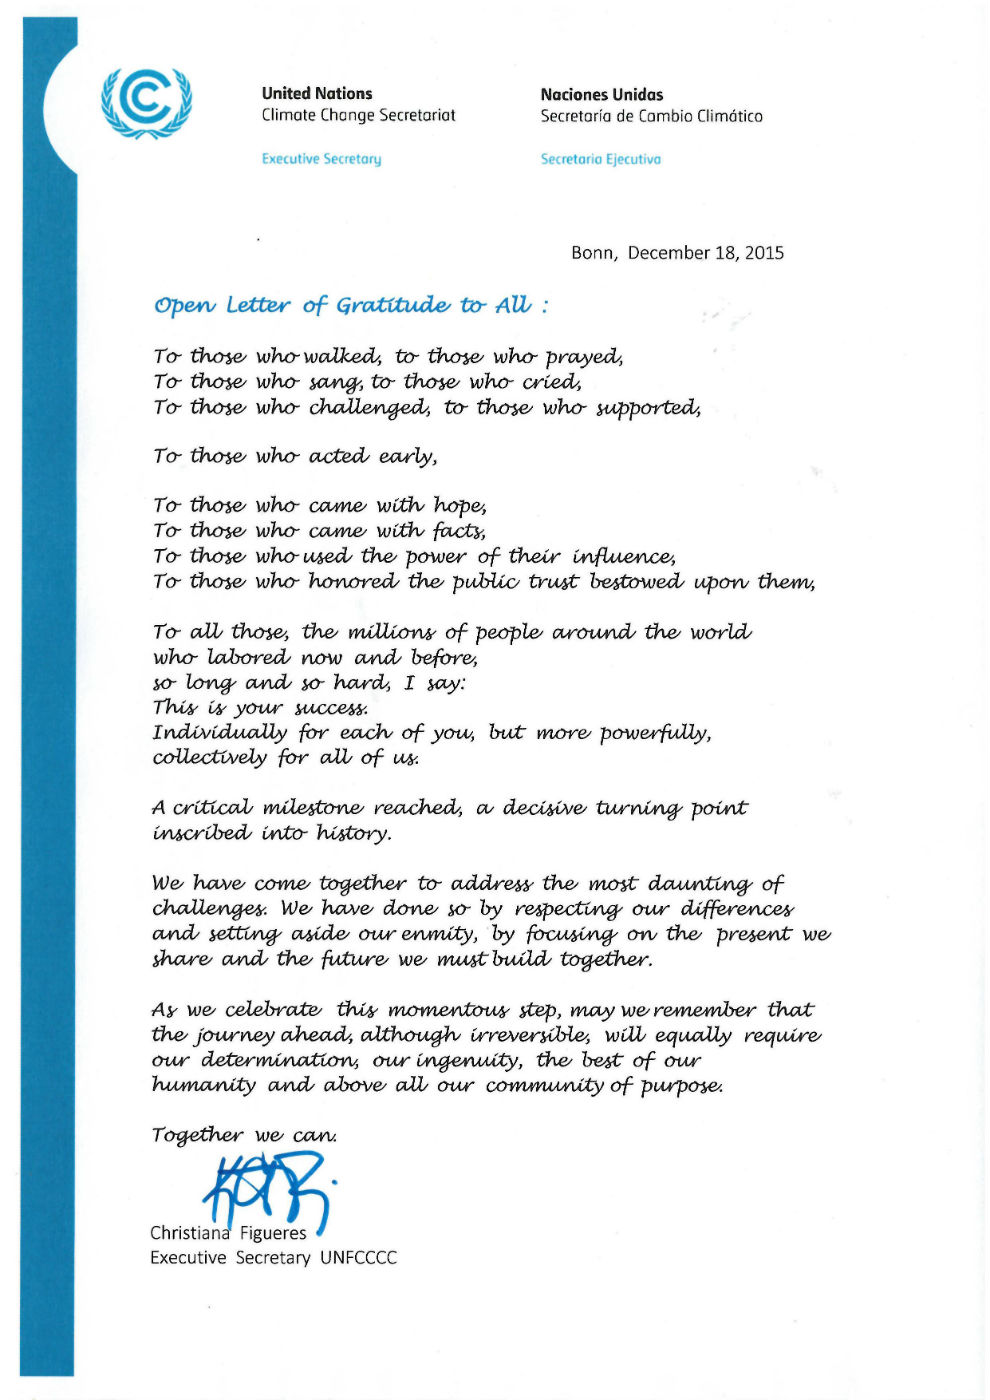 open-letter-of-gratitude-page-001b